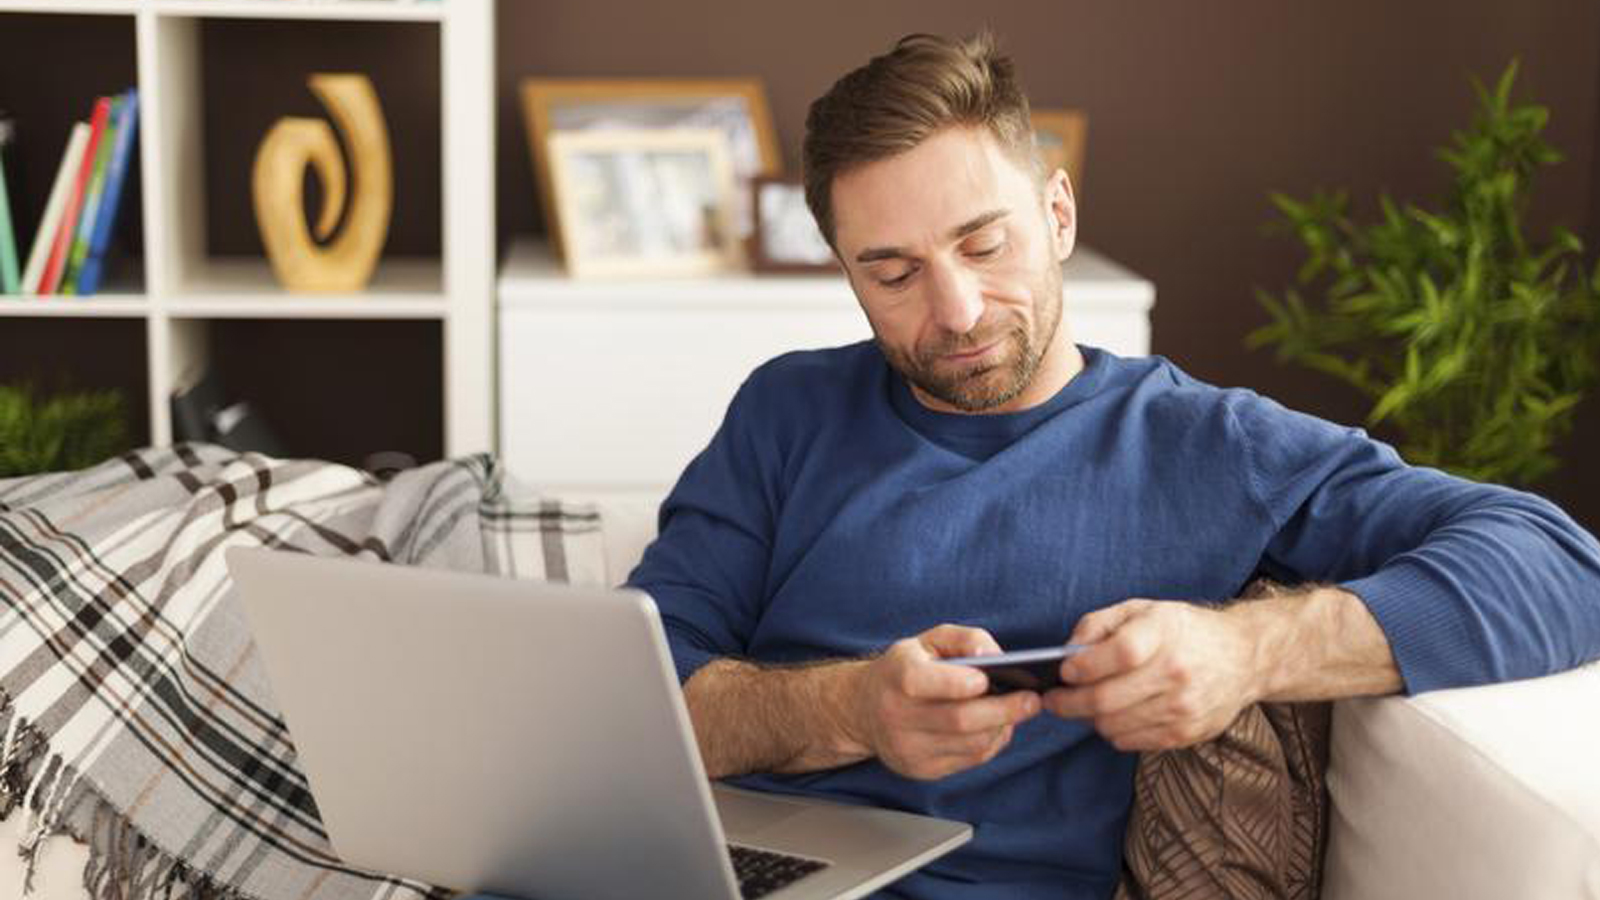 A man sitting on a sofa looking at his mobile phone with a laptop open in front of him.